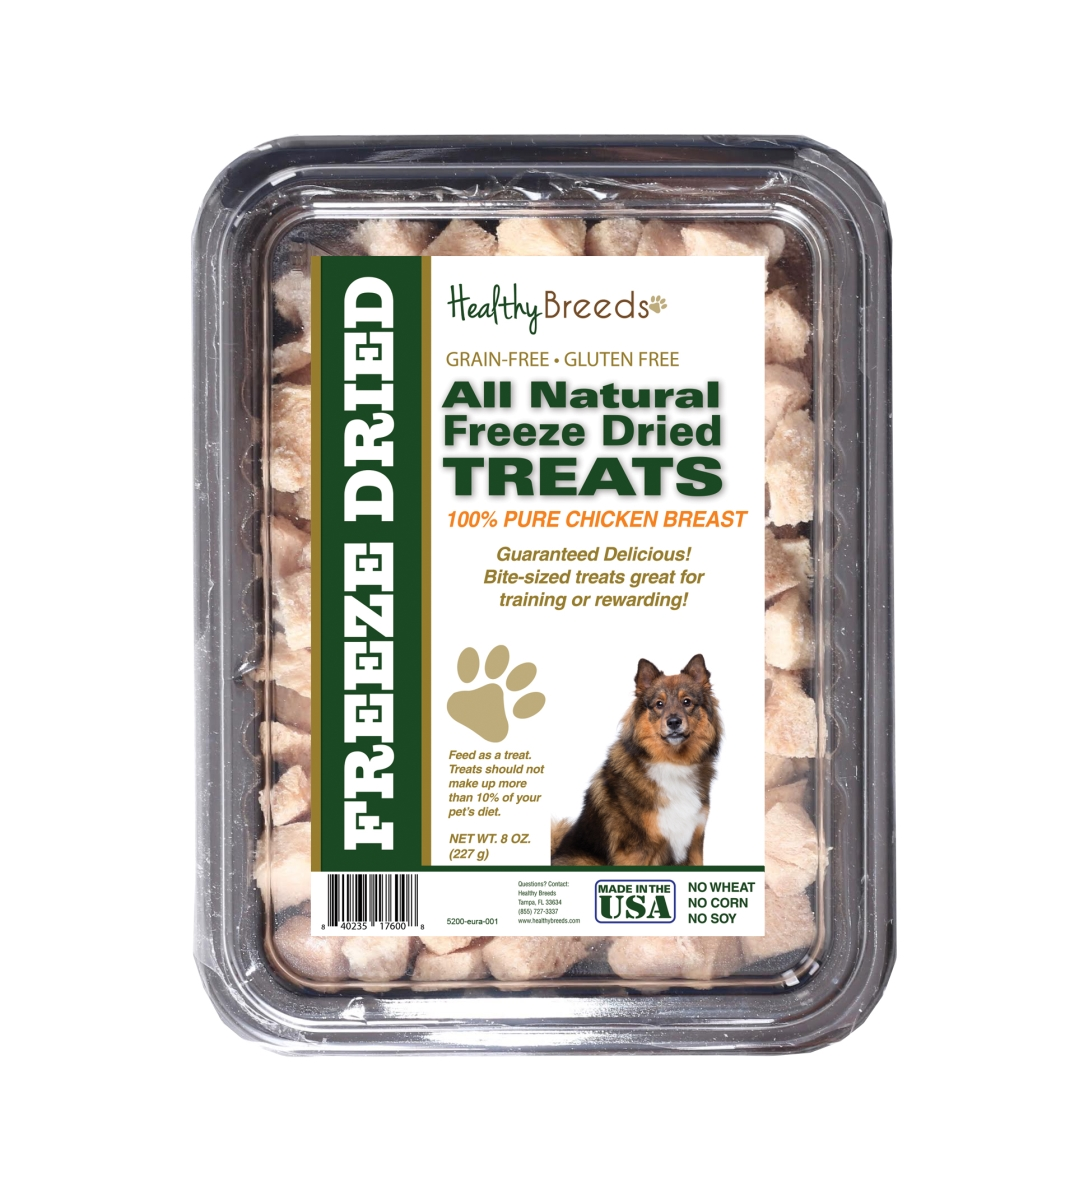 Healthy Breeds 840235176008 8 oz Eurasier All Natural Freeze Dried Treats Chicken Breast